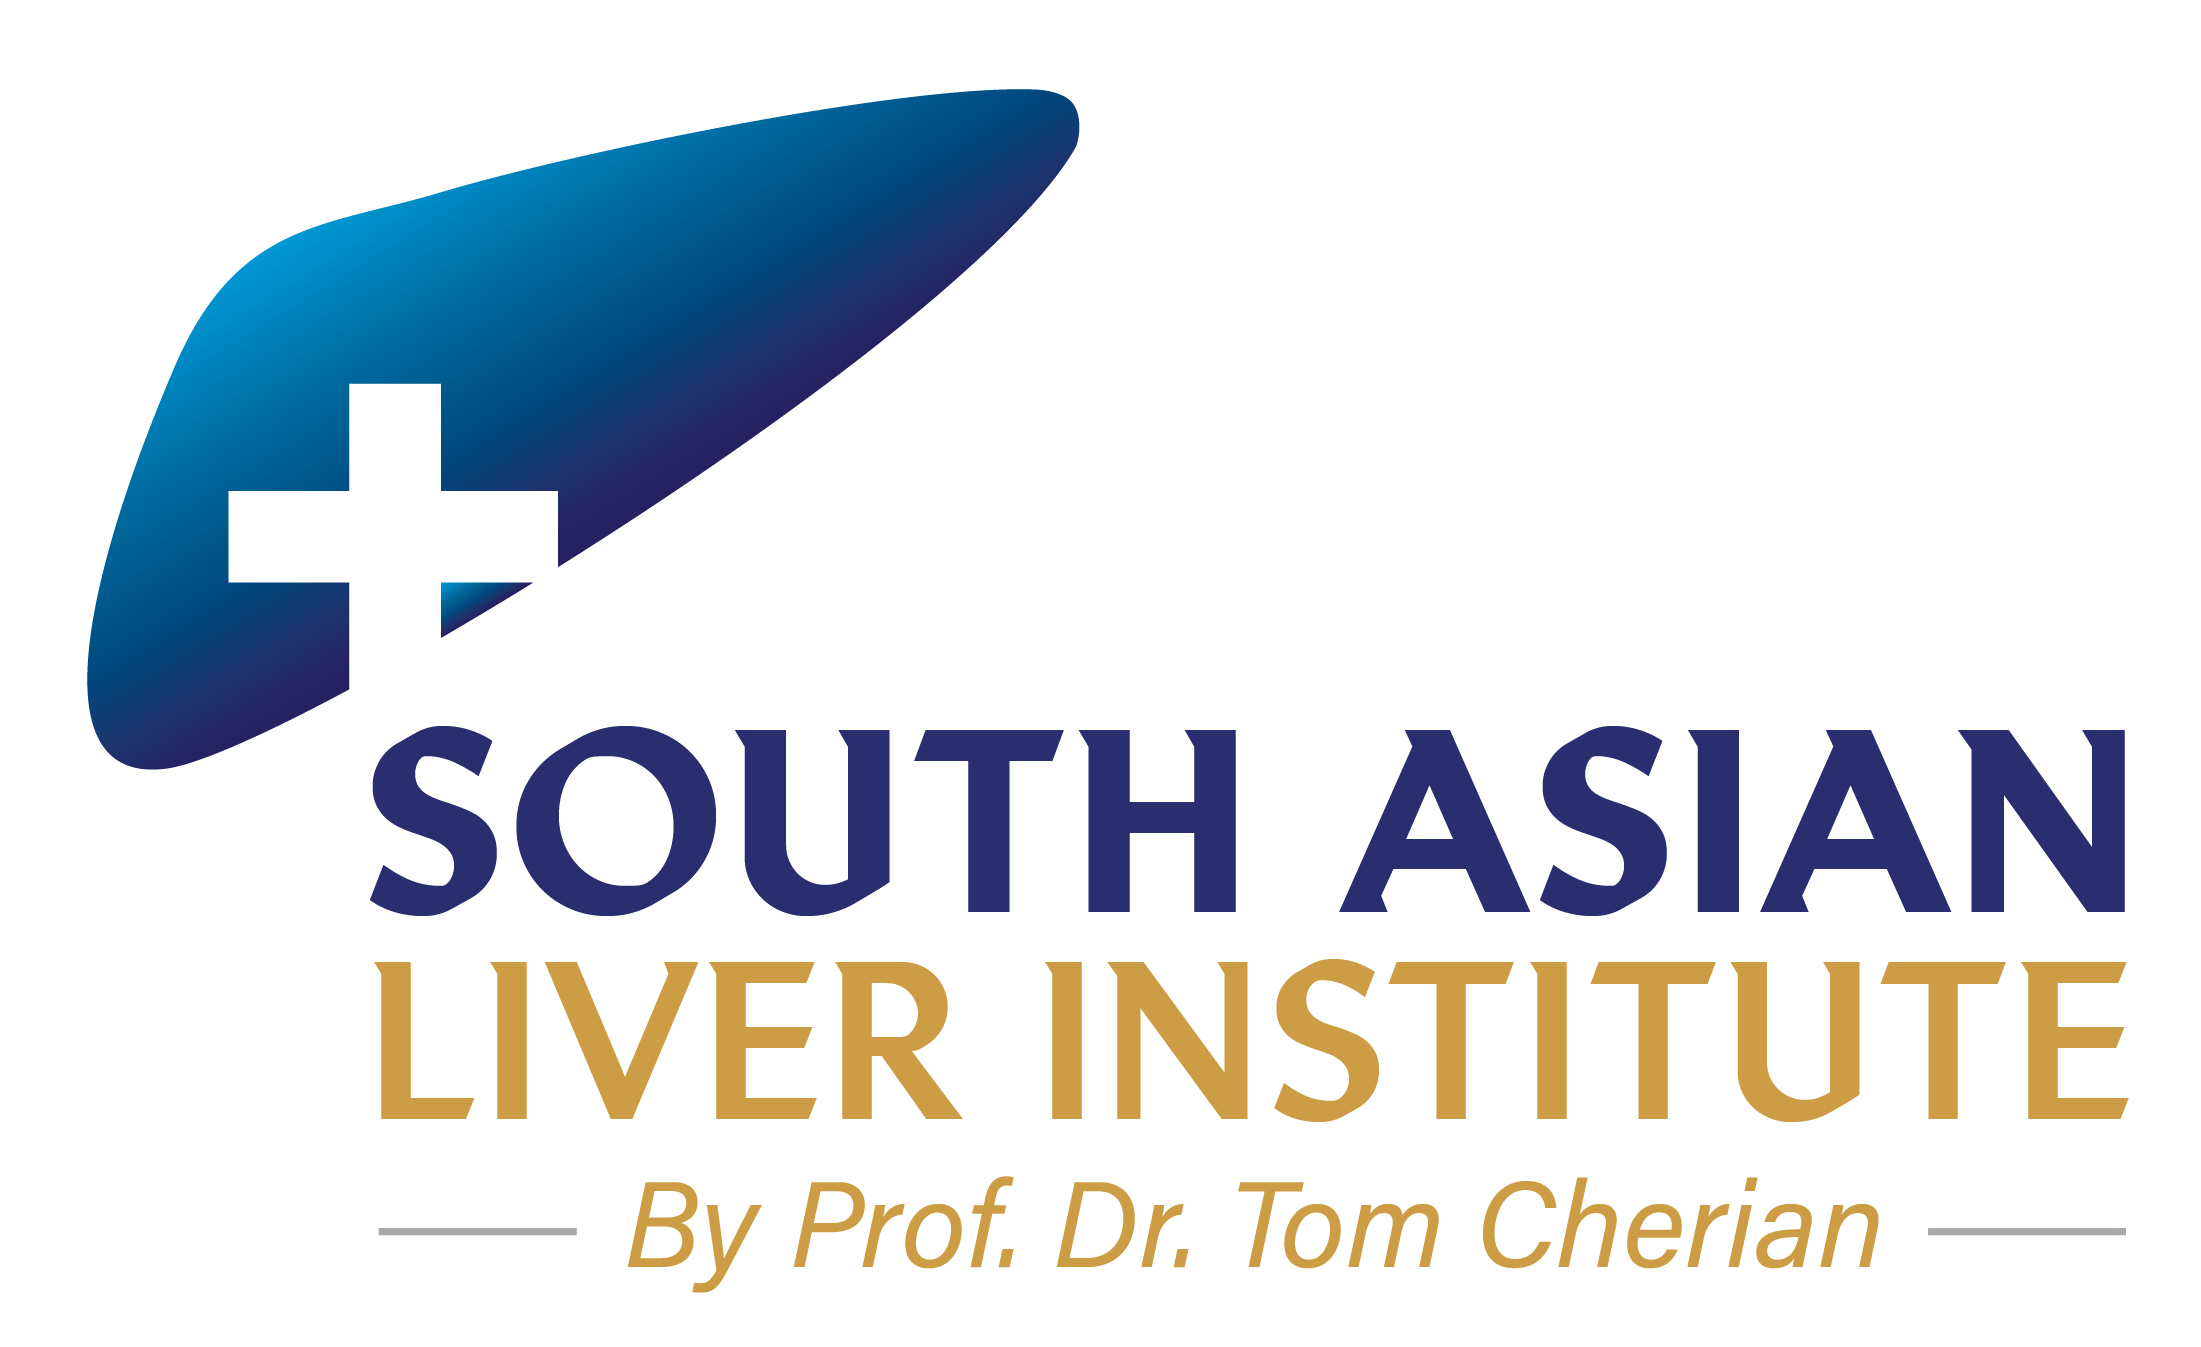 South Asian Liver Institute